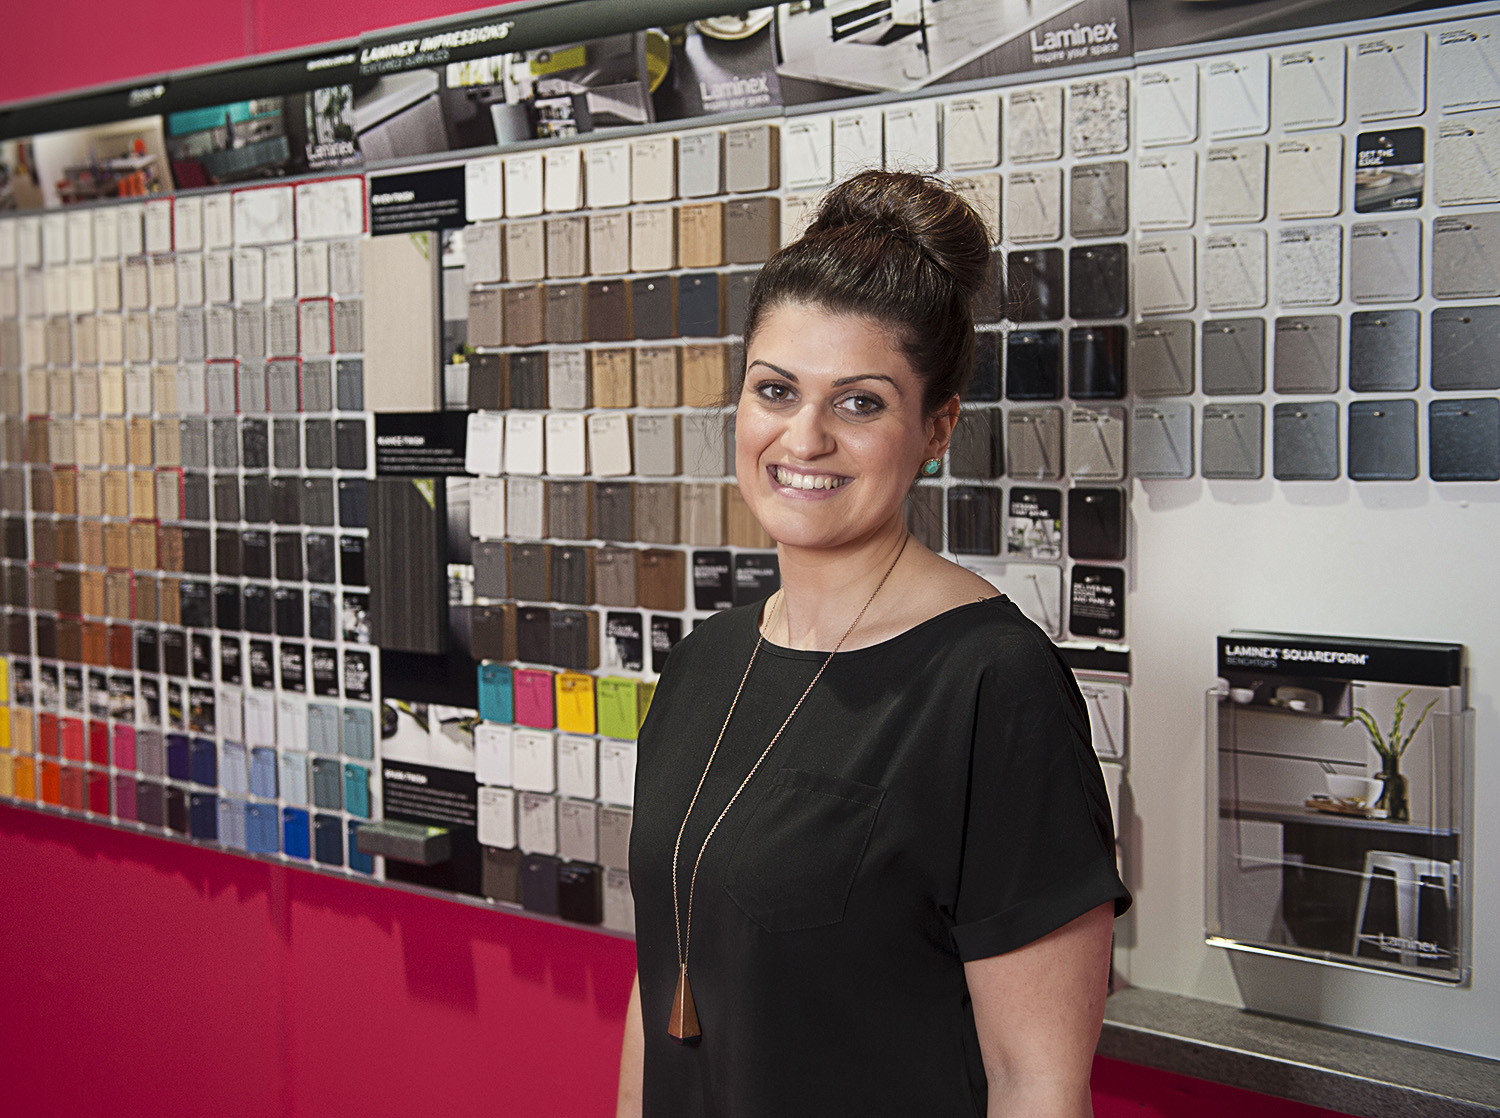 Interior designer and decorator Liana Corbino at her workplace with colour samples